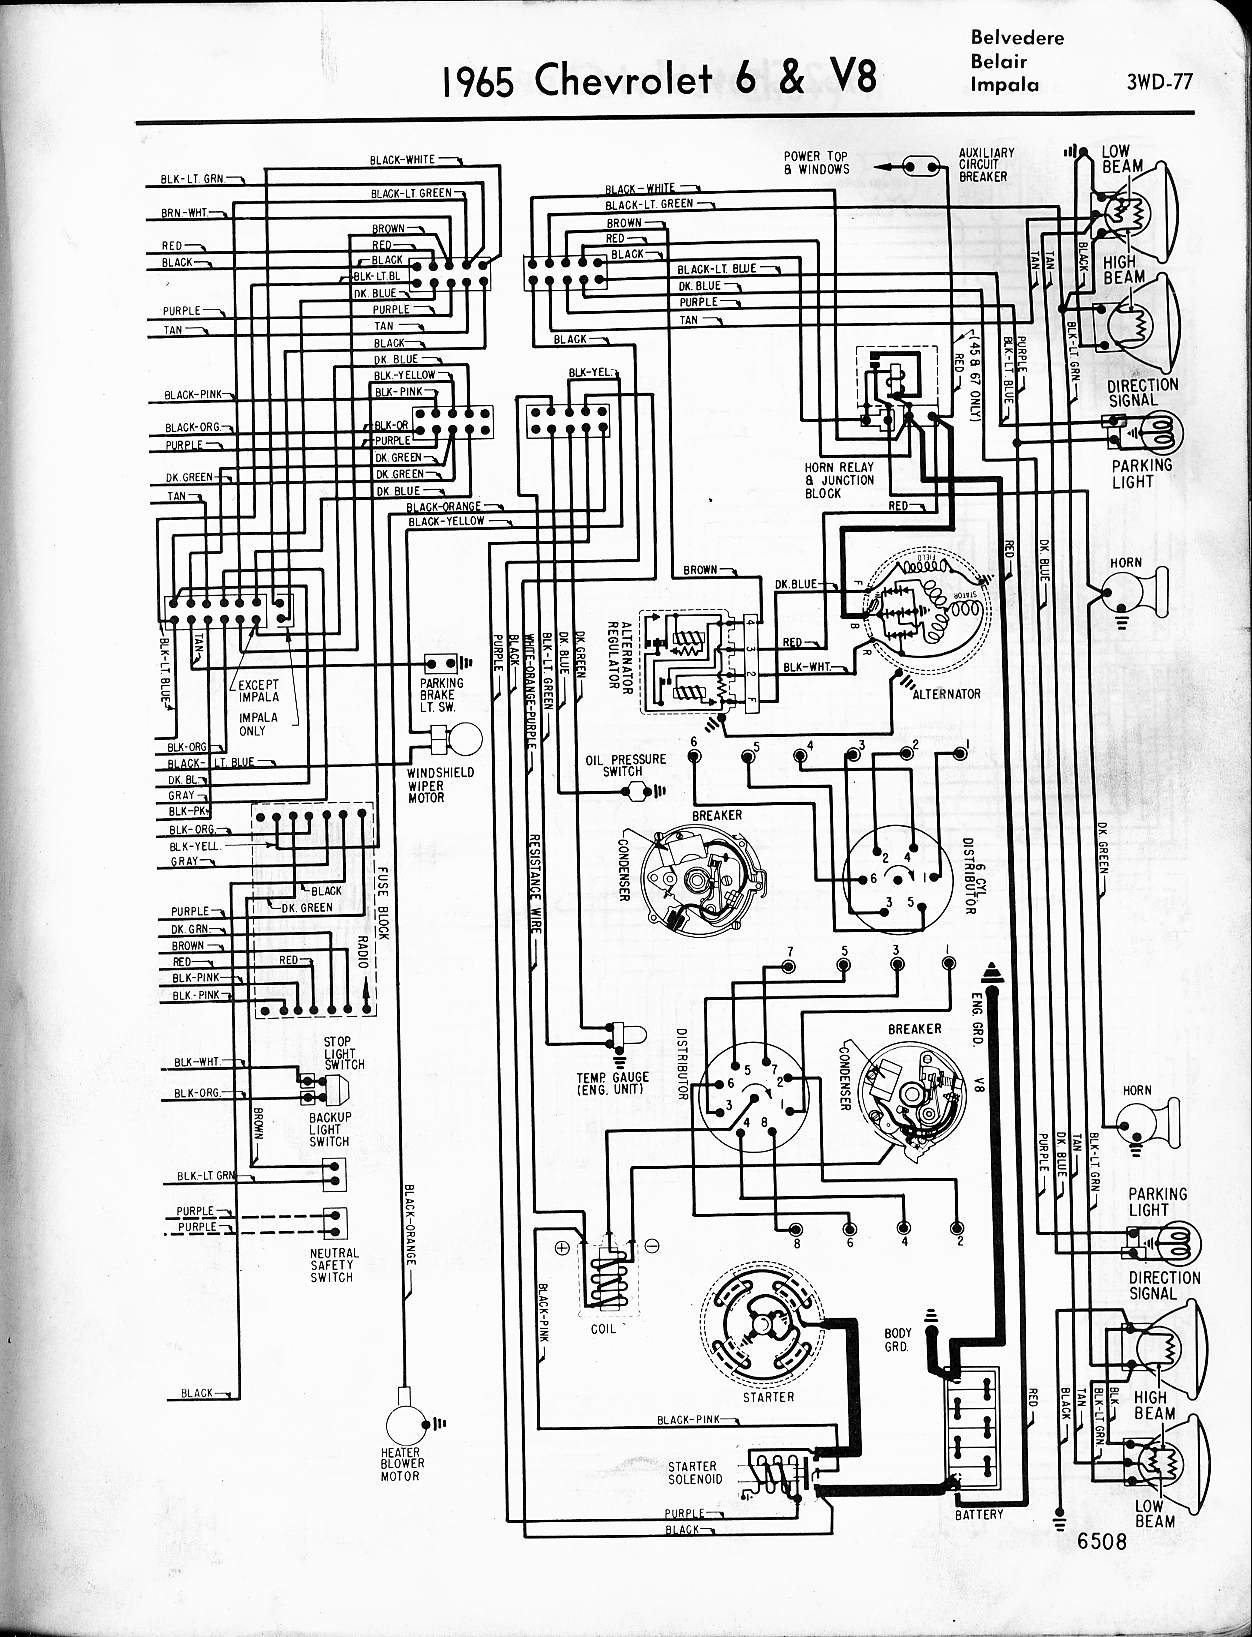 1972 chevy chevelle wiring diagram 1981 jeep cj7 70 engine harness free